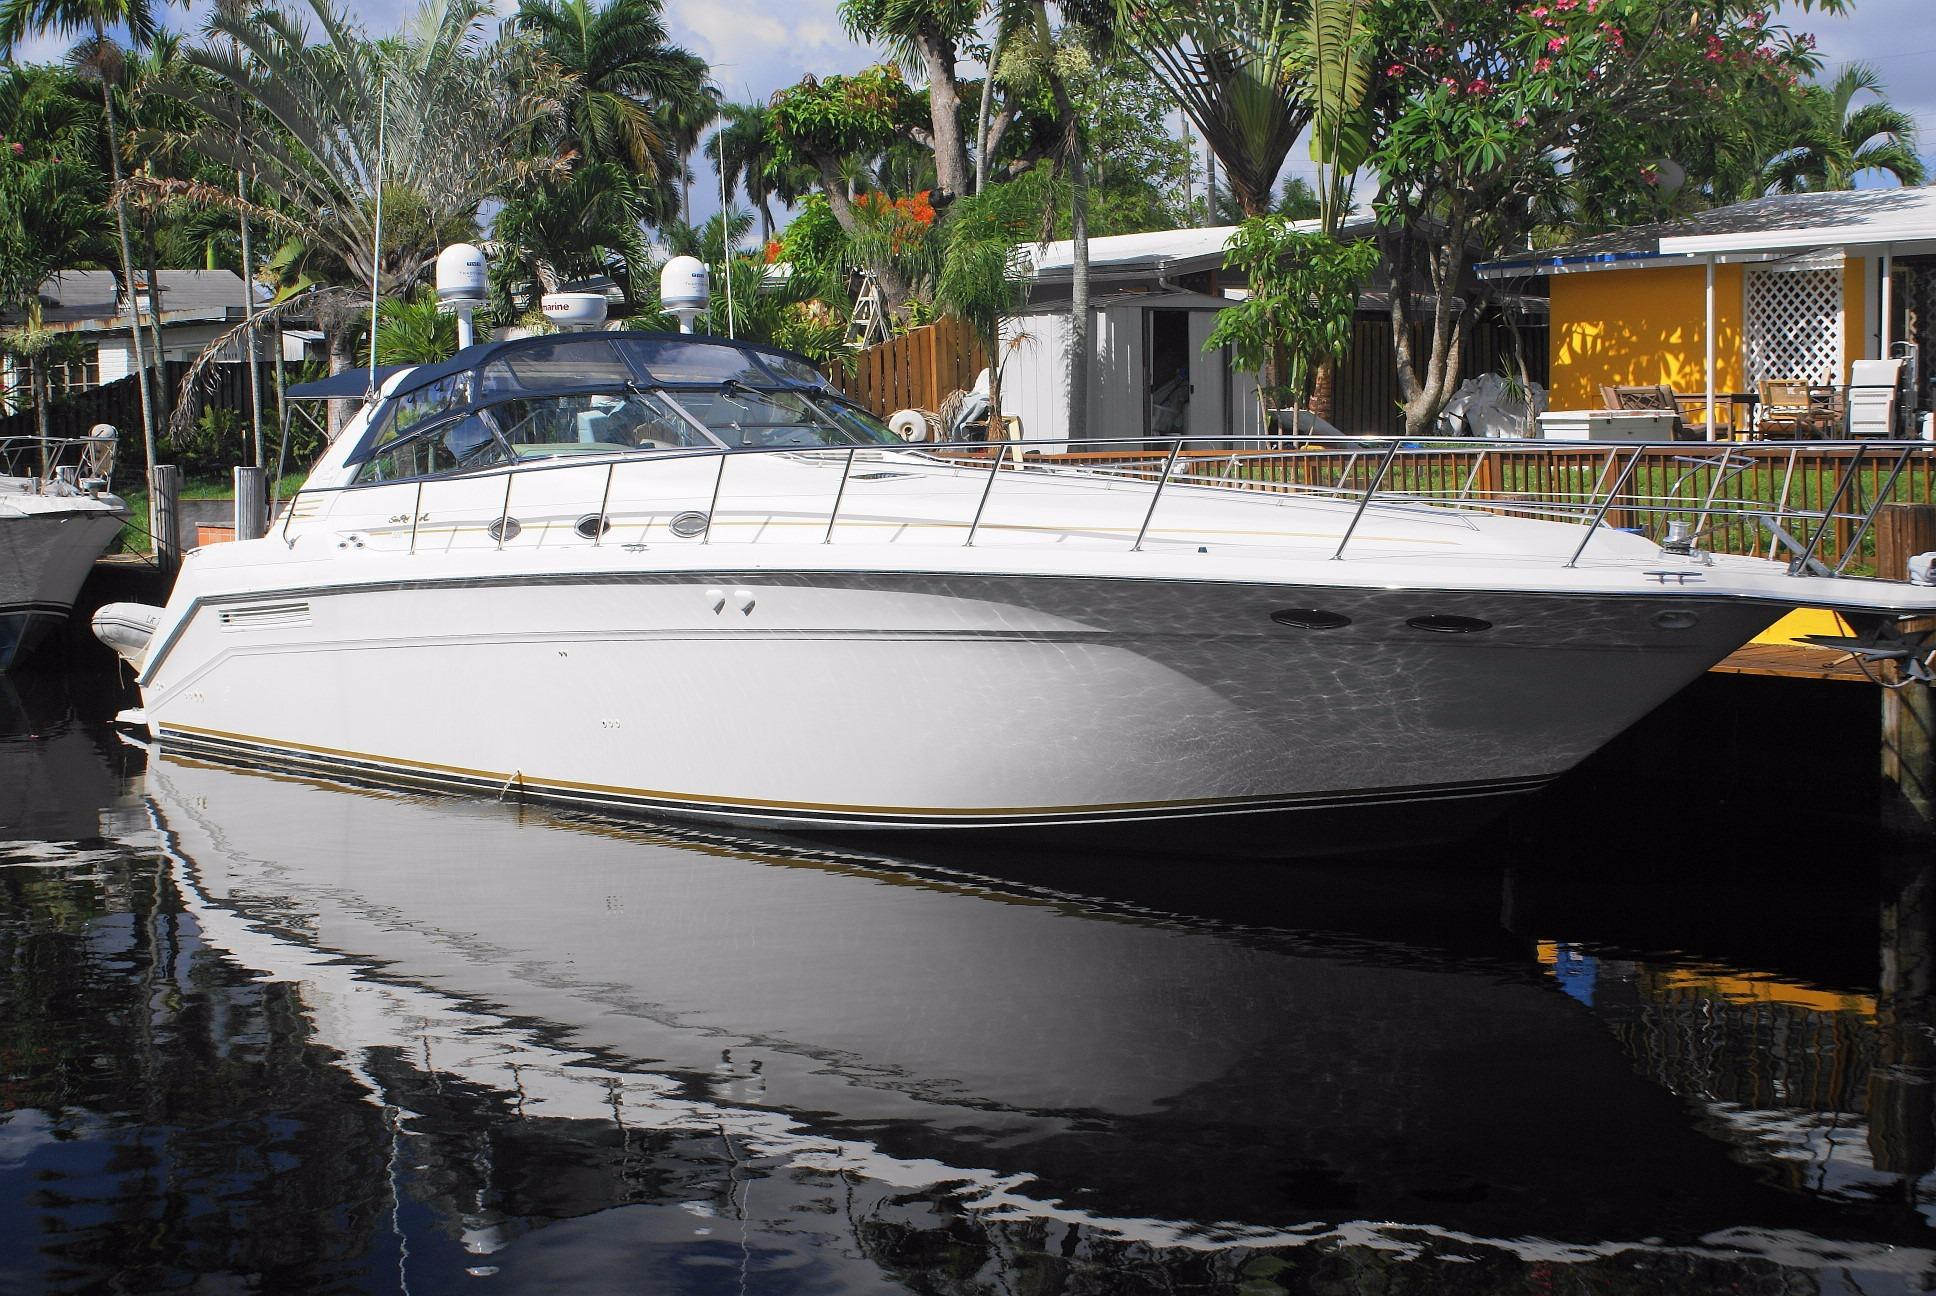 1995 Sea Ray Freshwater 500 Sundancer with Lift